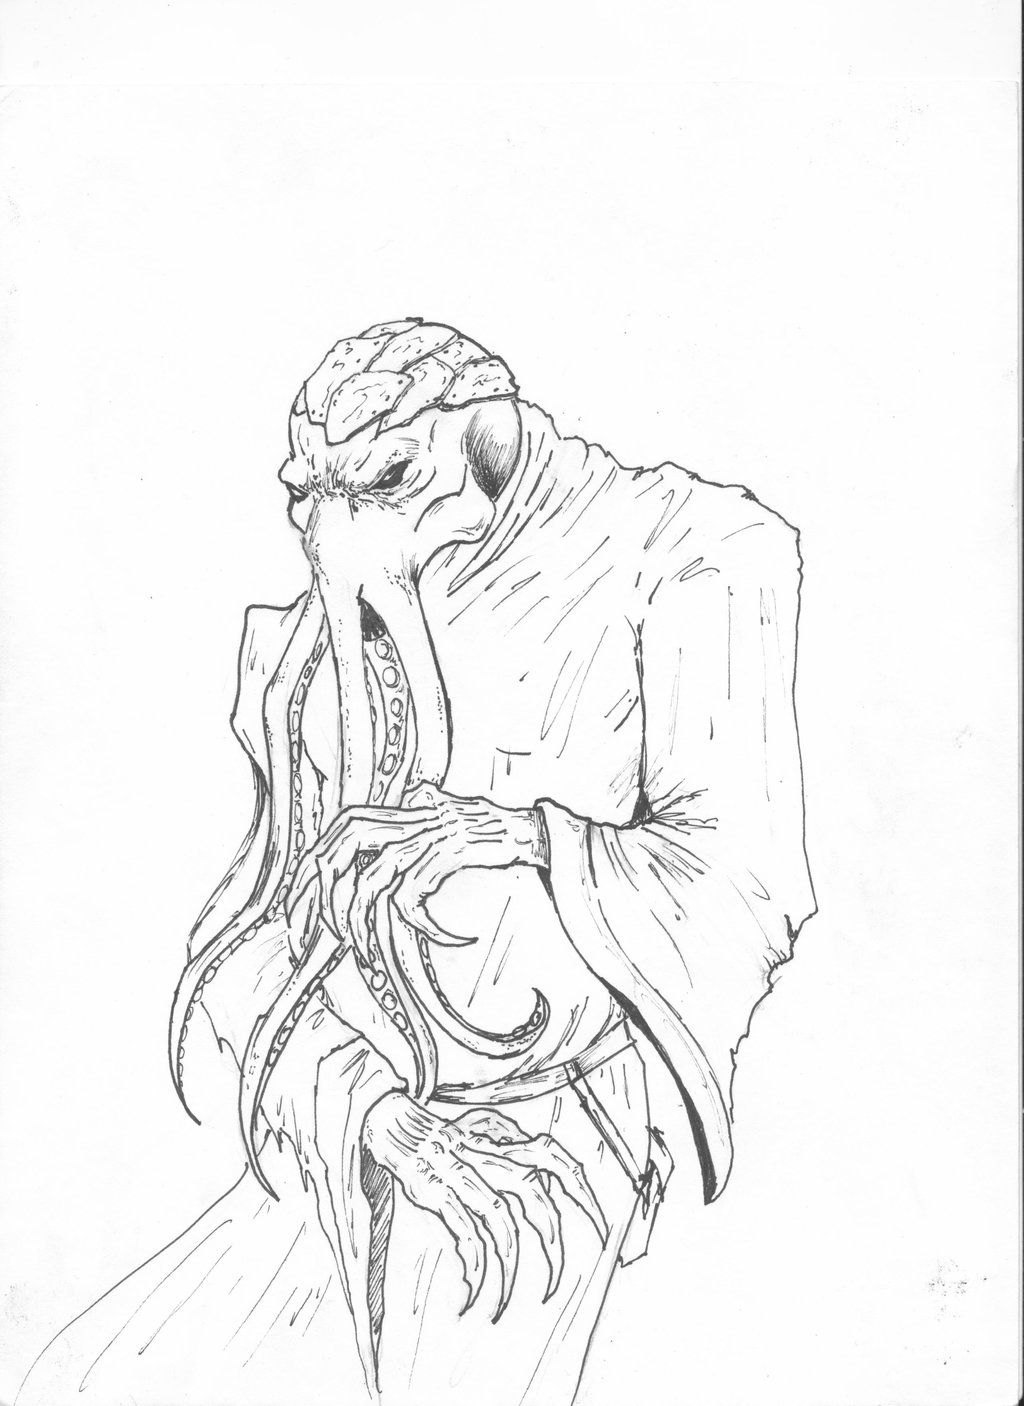 Clarota the Mind Flayer from Critical Role | Ink drawing, Drawings,  Character art